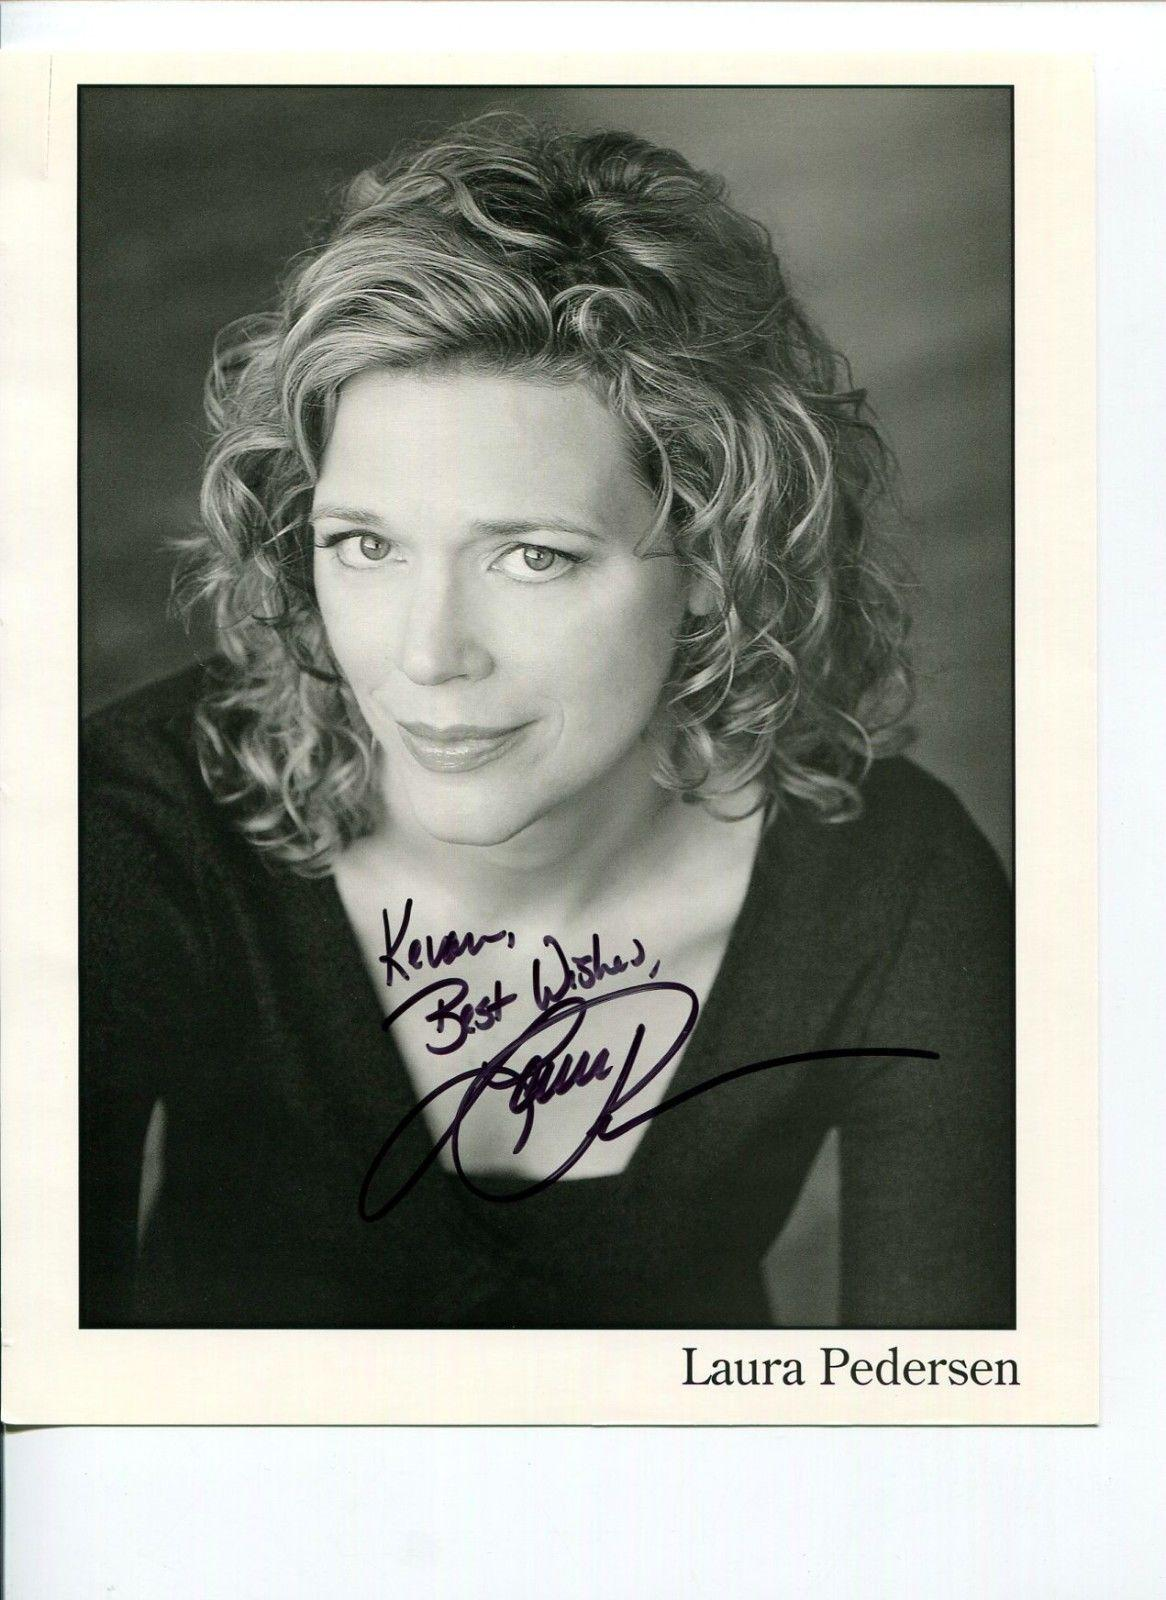 Laura Pedersen New York Times columnist And Author Signed Autograph Photo